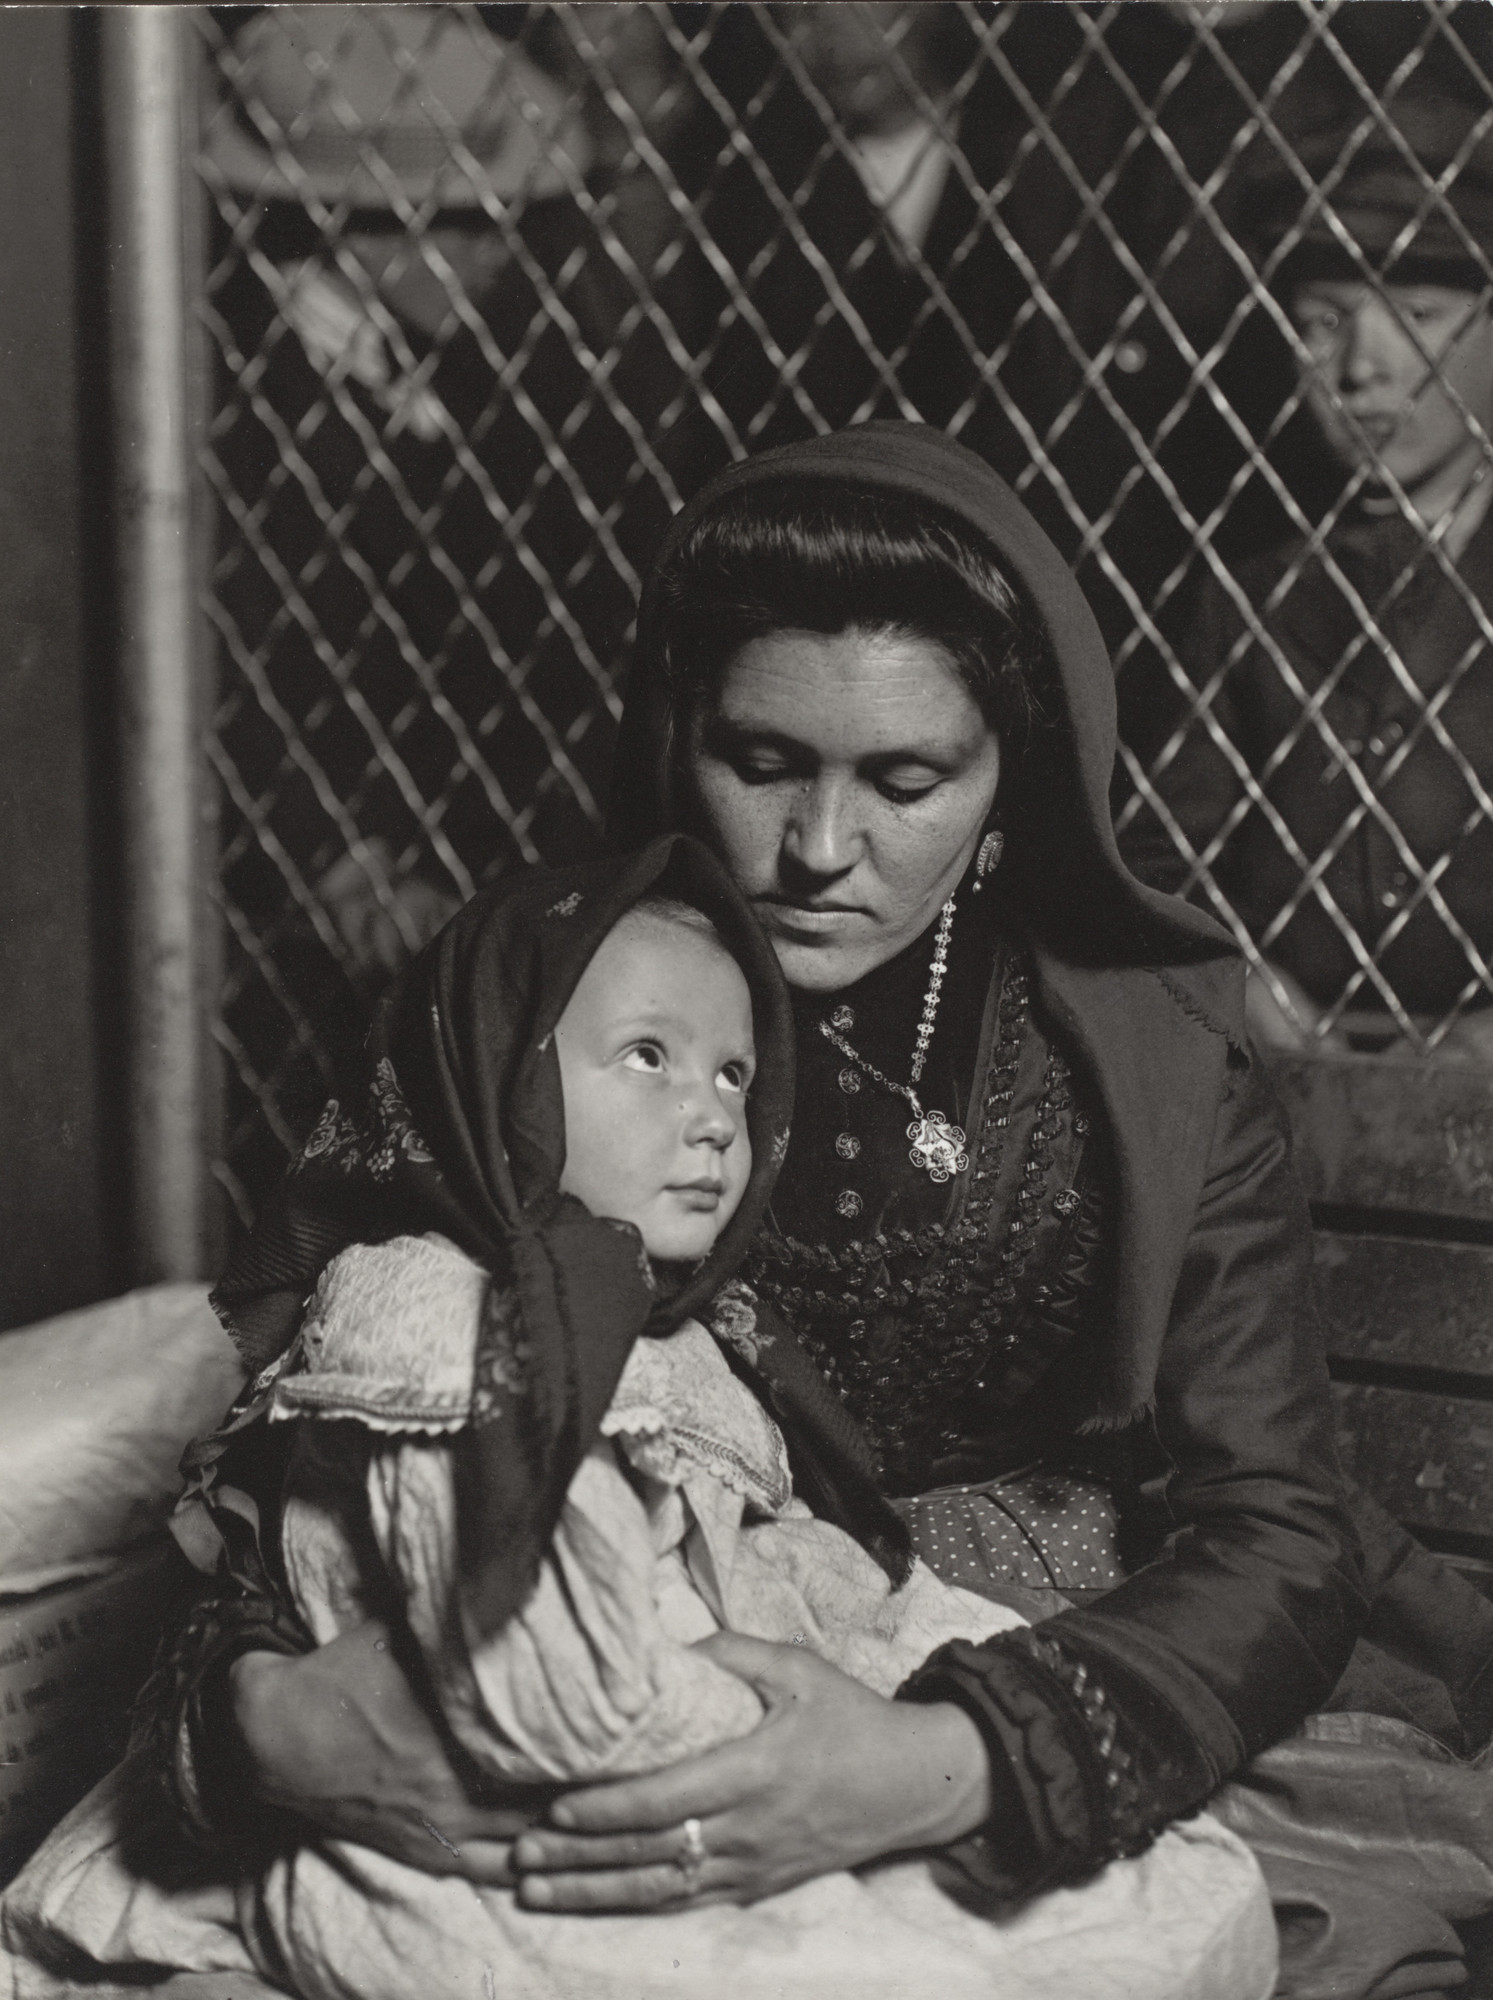 Lewis W. Hine. Peace, Ellis Island, New York. 1905